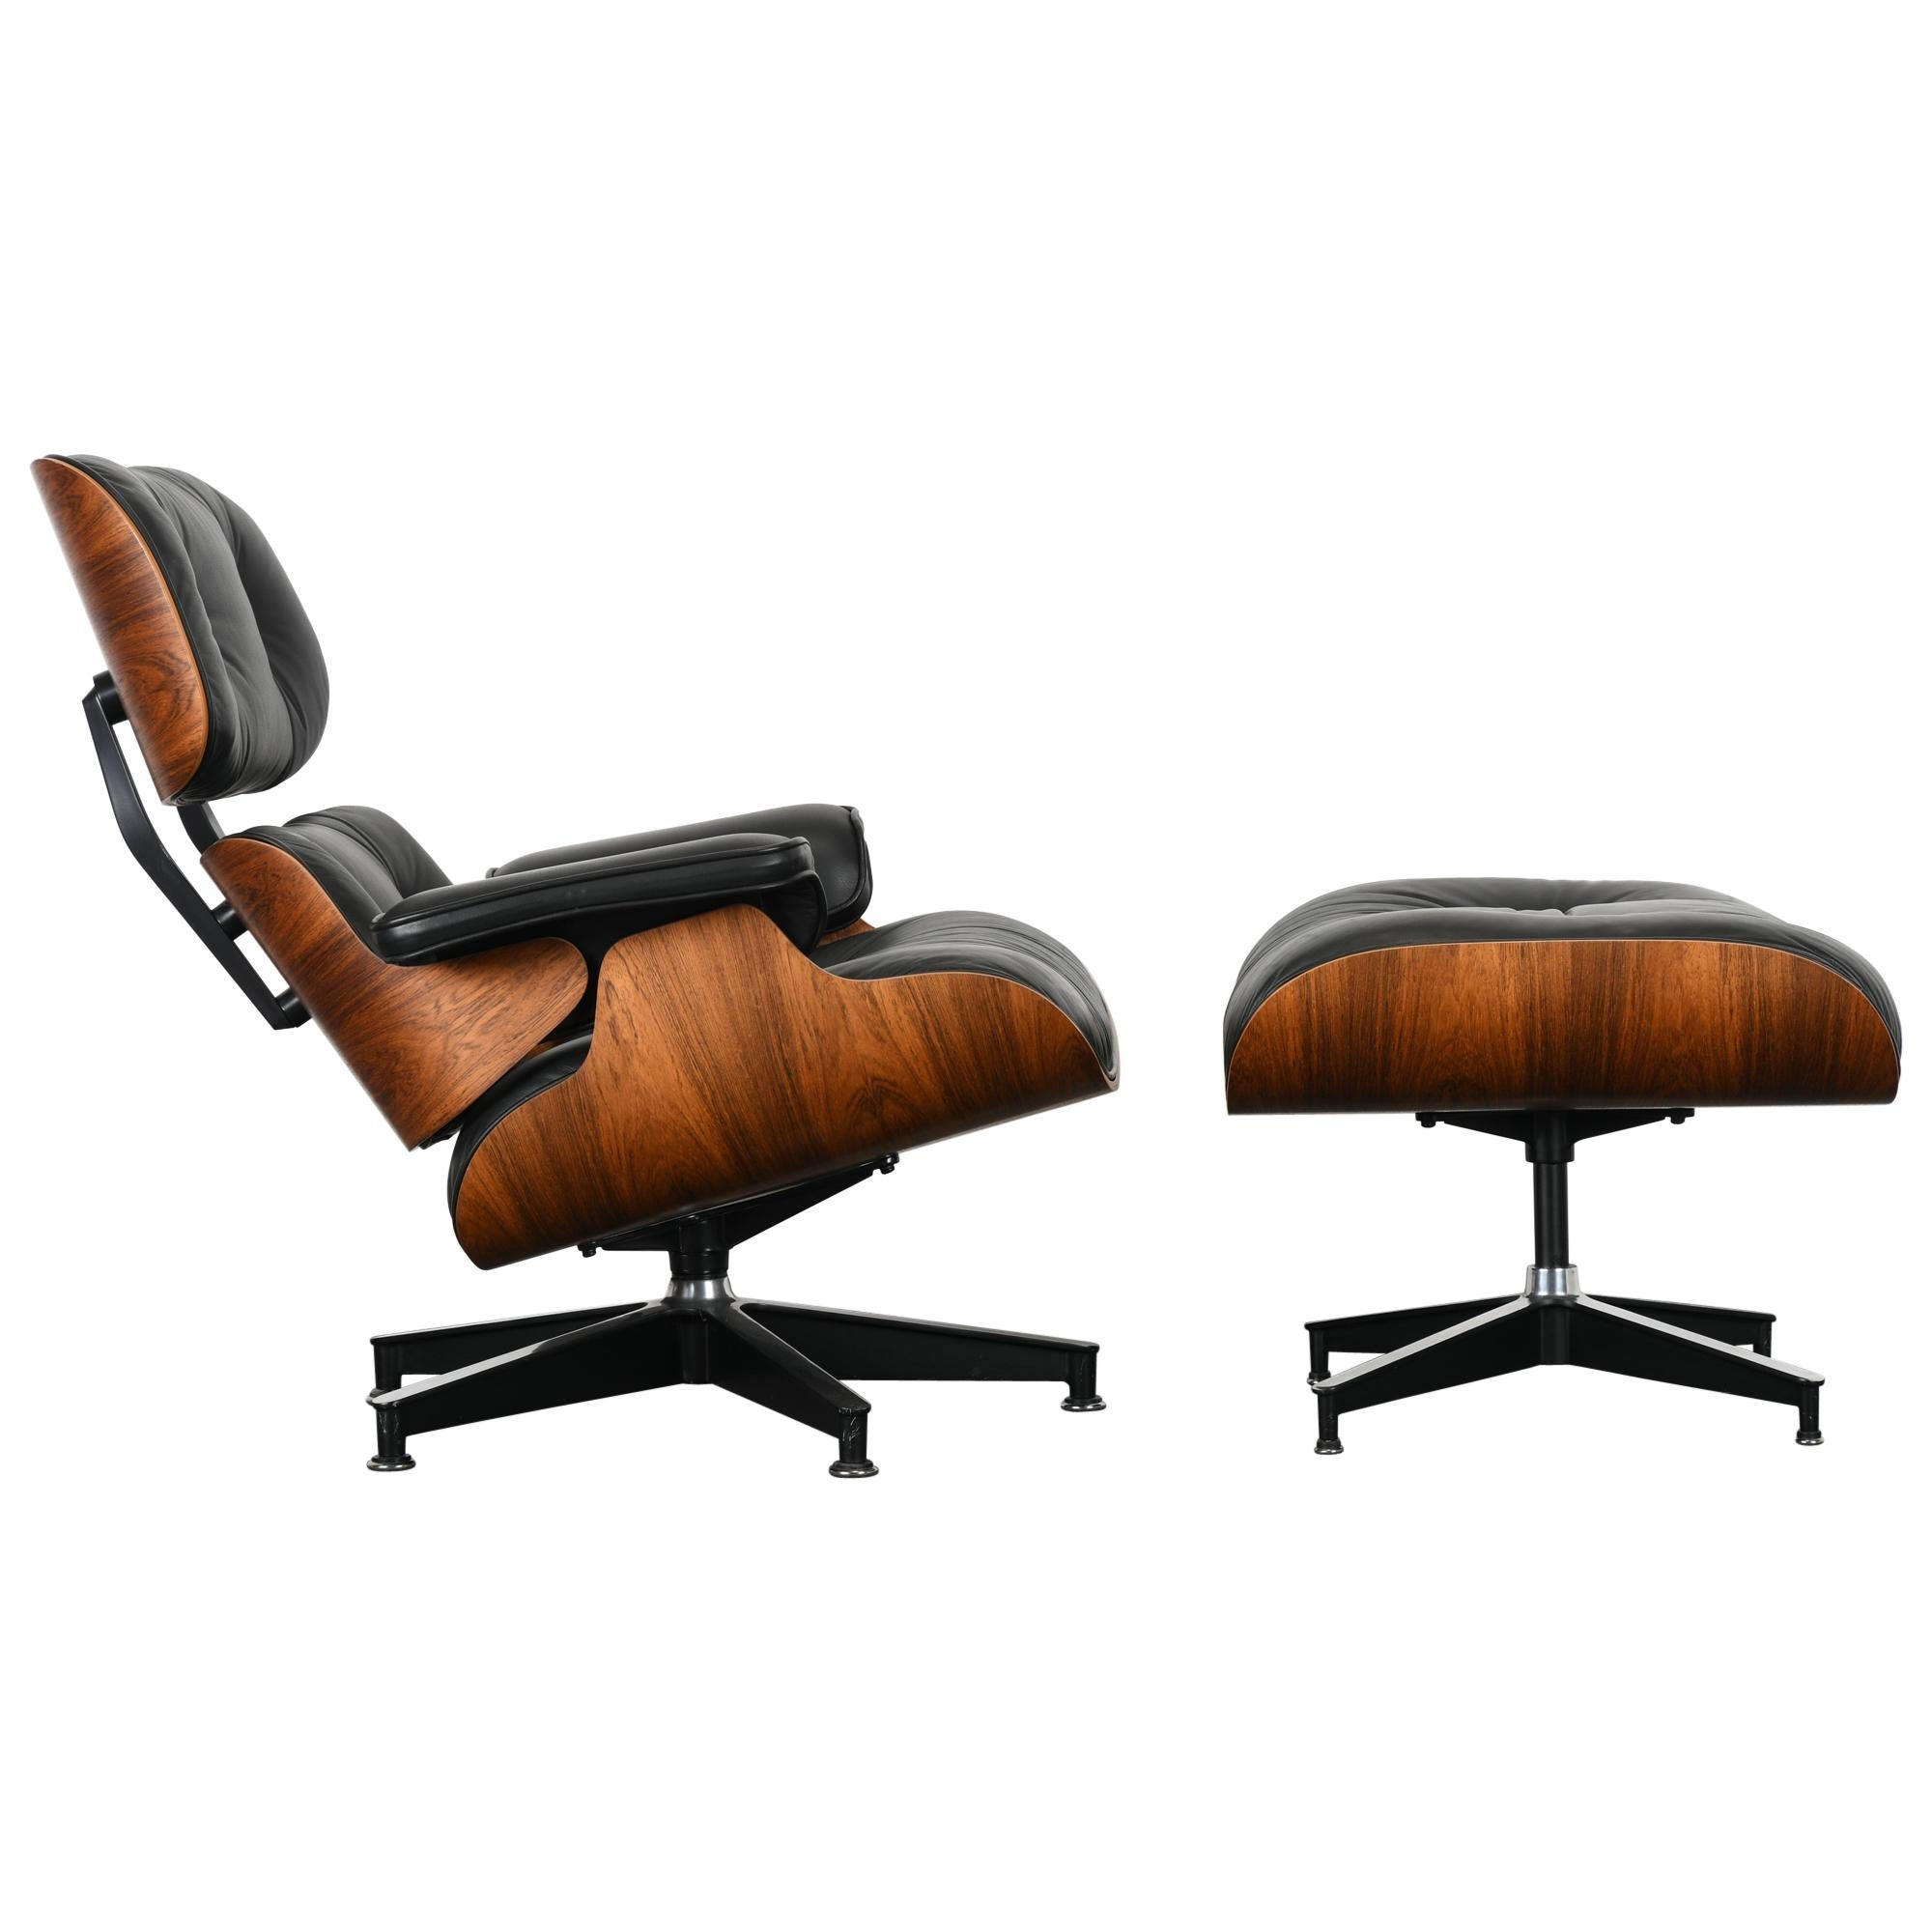 Charles and Ray Eames Lounge Chair and Ottoman, 1971-1974